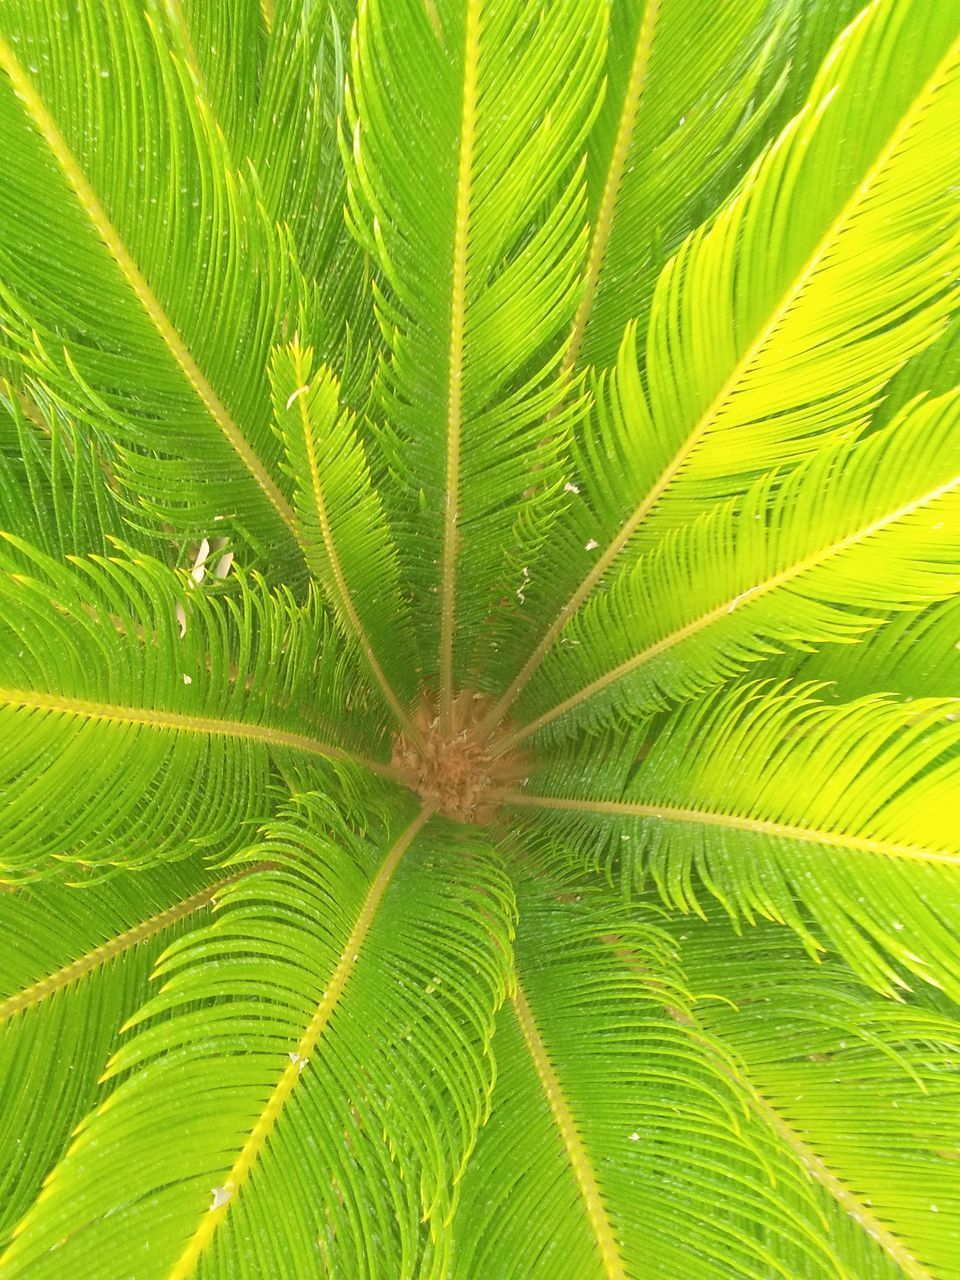 leaf, green color, growth, nature, full frame, plant, freshness, no people, backgrounds, palm tree, day, frond, close-up, beauty in nature, tree, outdoors, fragility